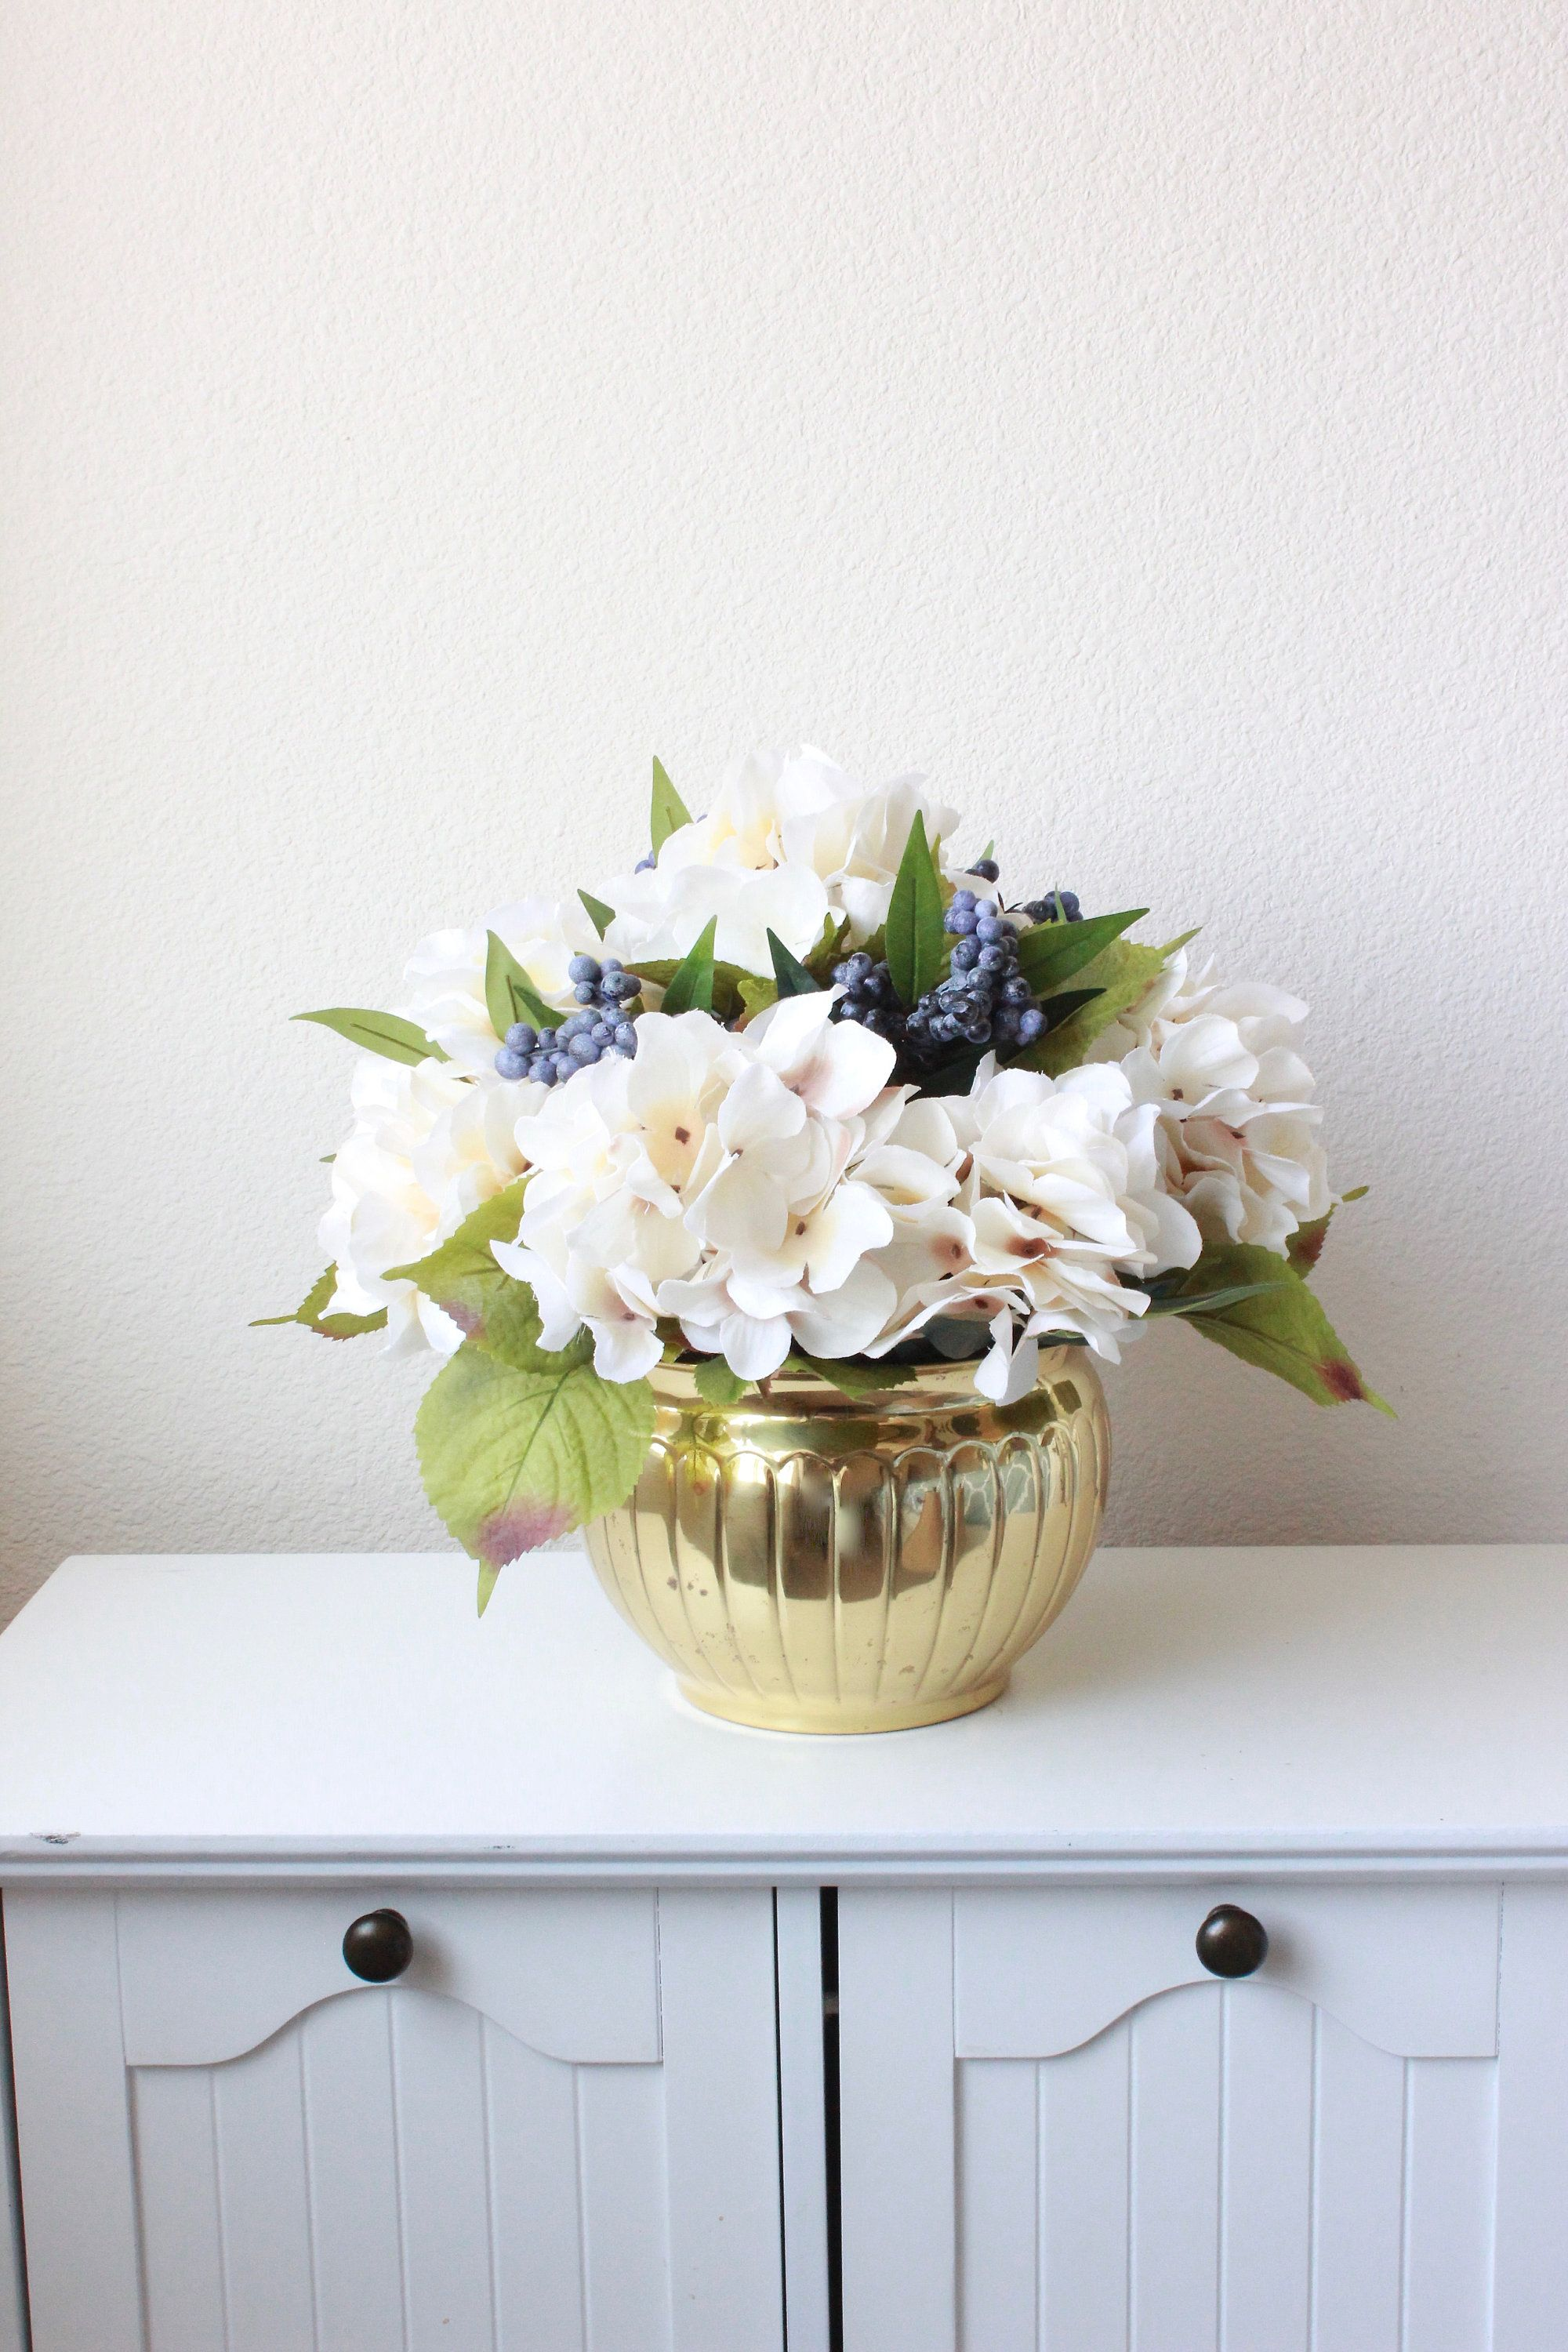 hydrengia vases | Blue Hydrangea In A Glass Cylinder Vase ... |Country Hydrangeas Vase